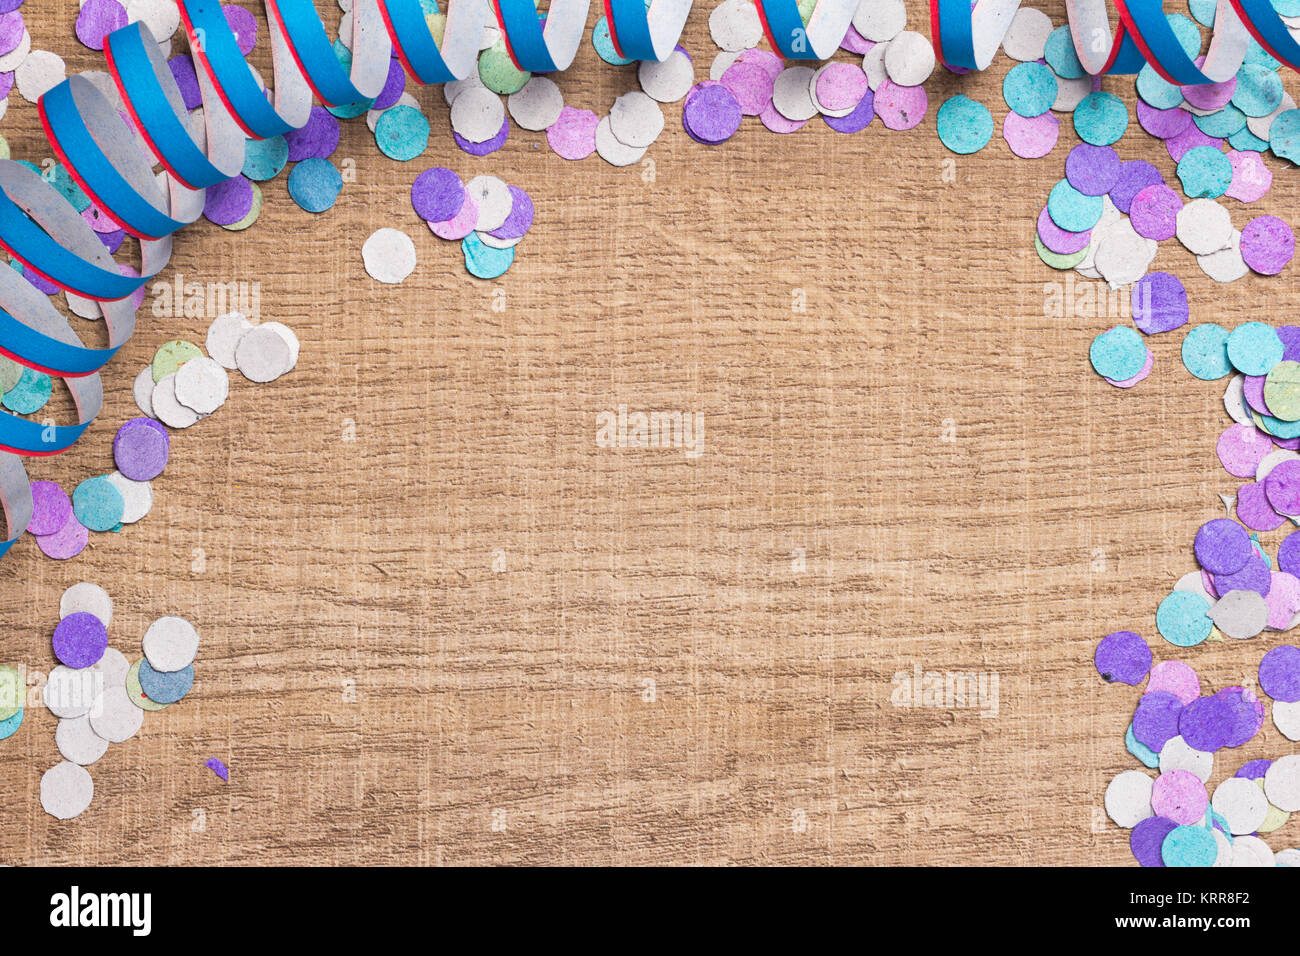 Colorful confetti and streaming spread over wooden table. Cool colors: blue, purple and aqua. Carnaval. - Stock Image